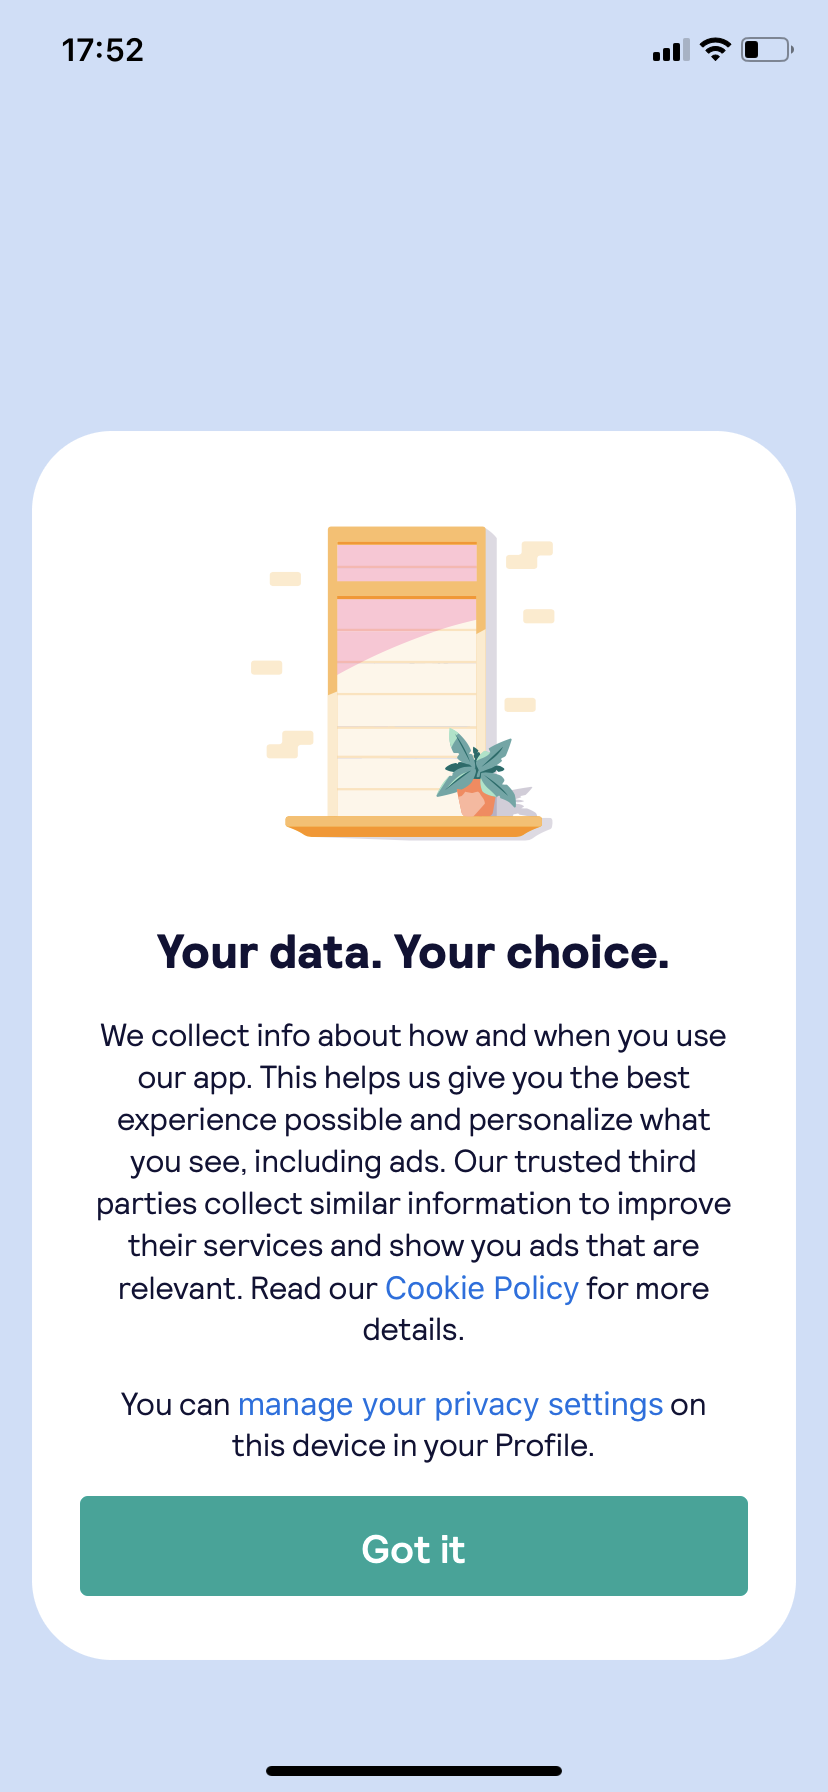 skyscanner mobile data privacy settings design